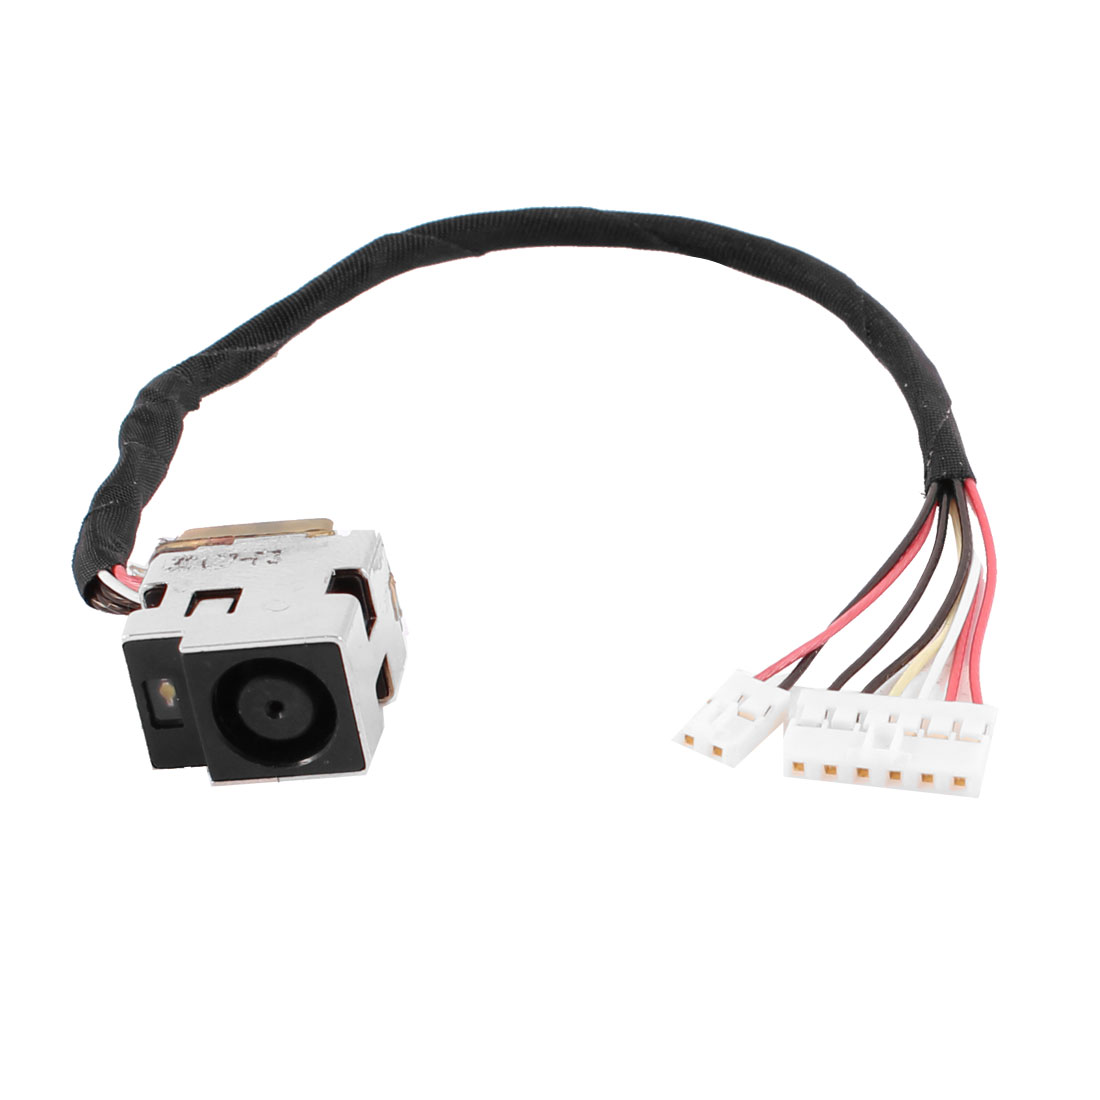 Laptop DC Power Jack Socket Cable Wire Harness PJ259 for HP Pavilion DV7-3000